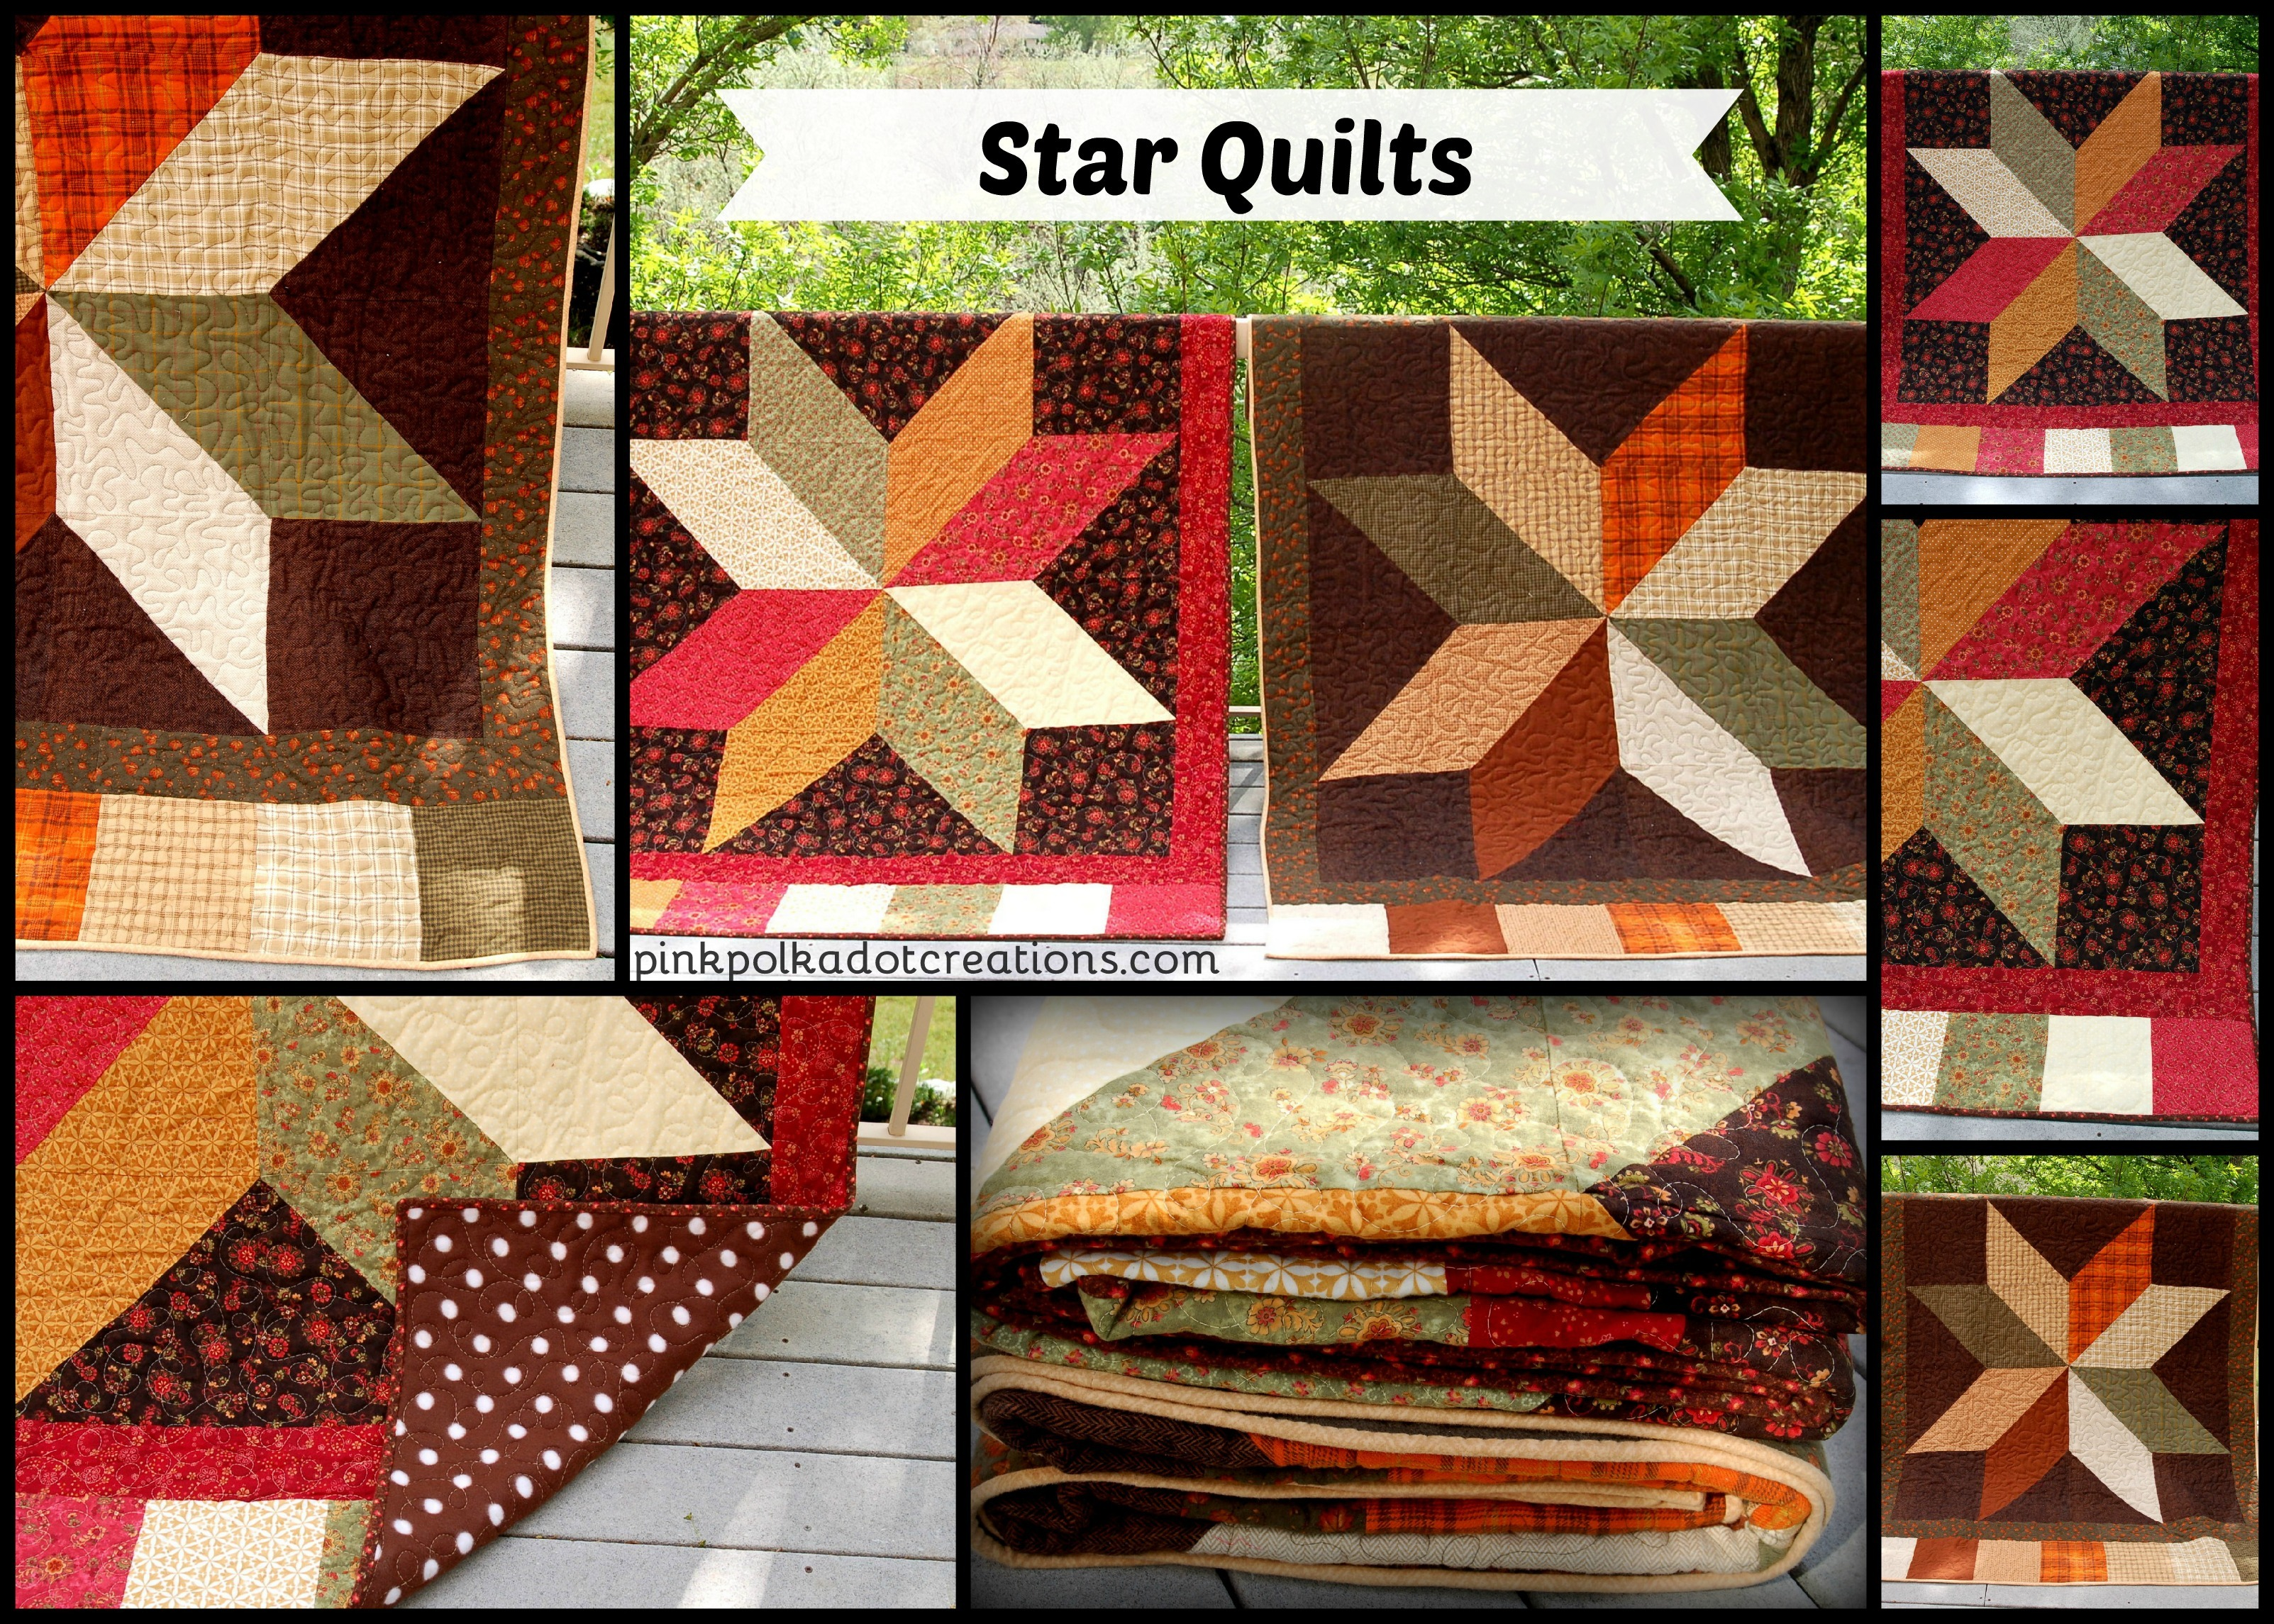 Star quilts title